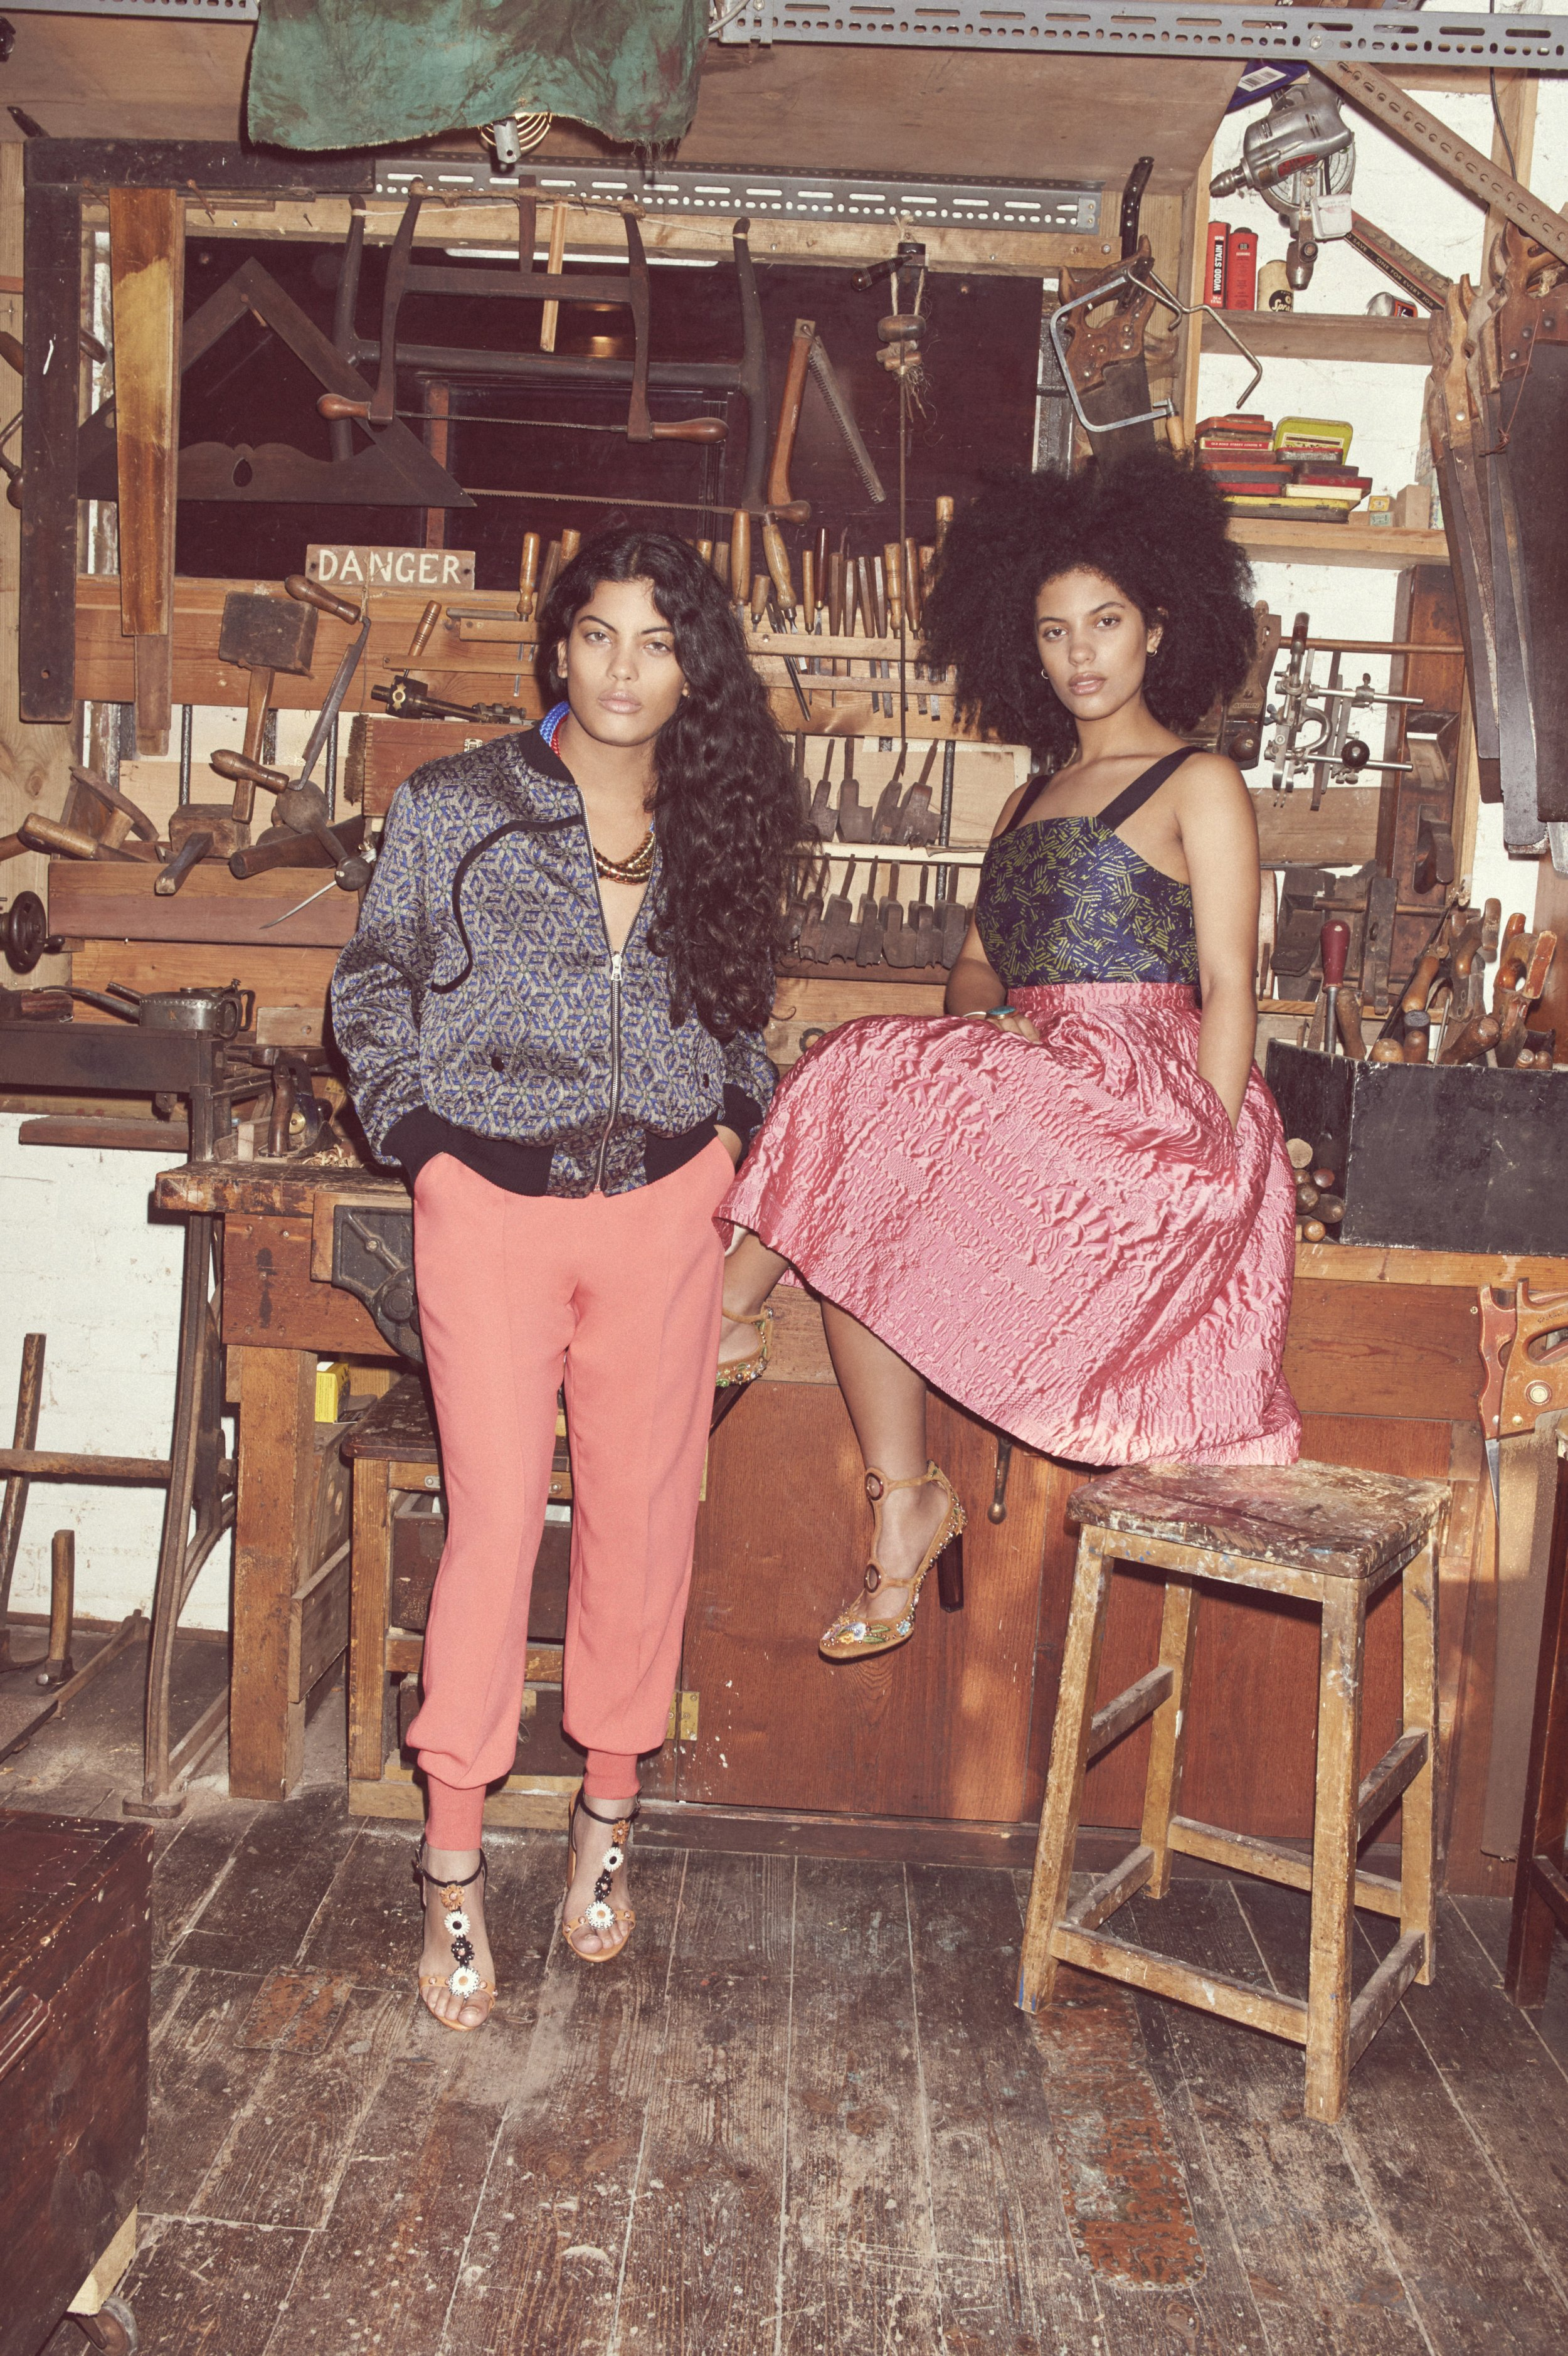 Creator_Nominee_Musical duo Ibeyi_542750124